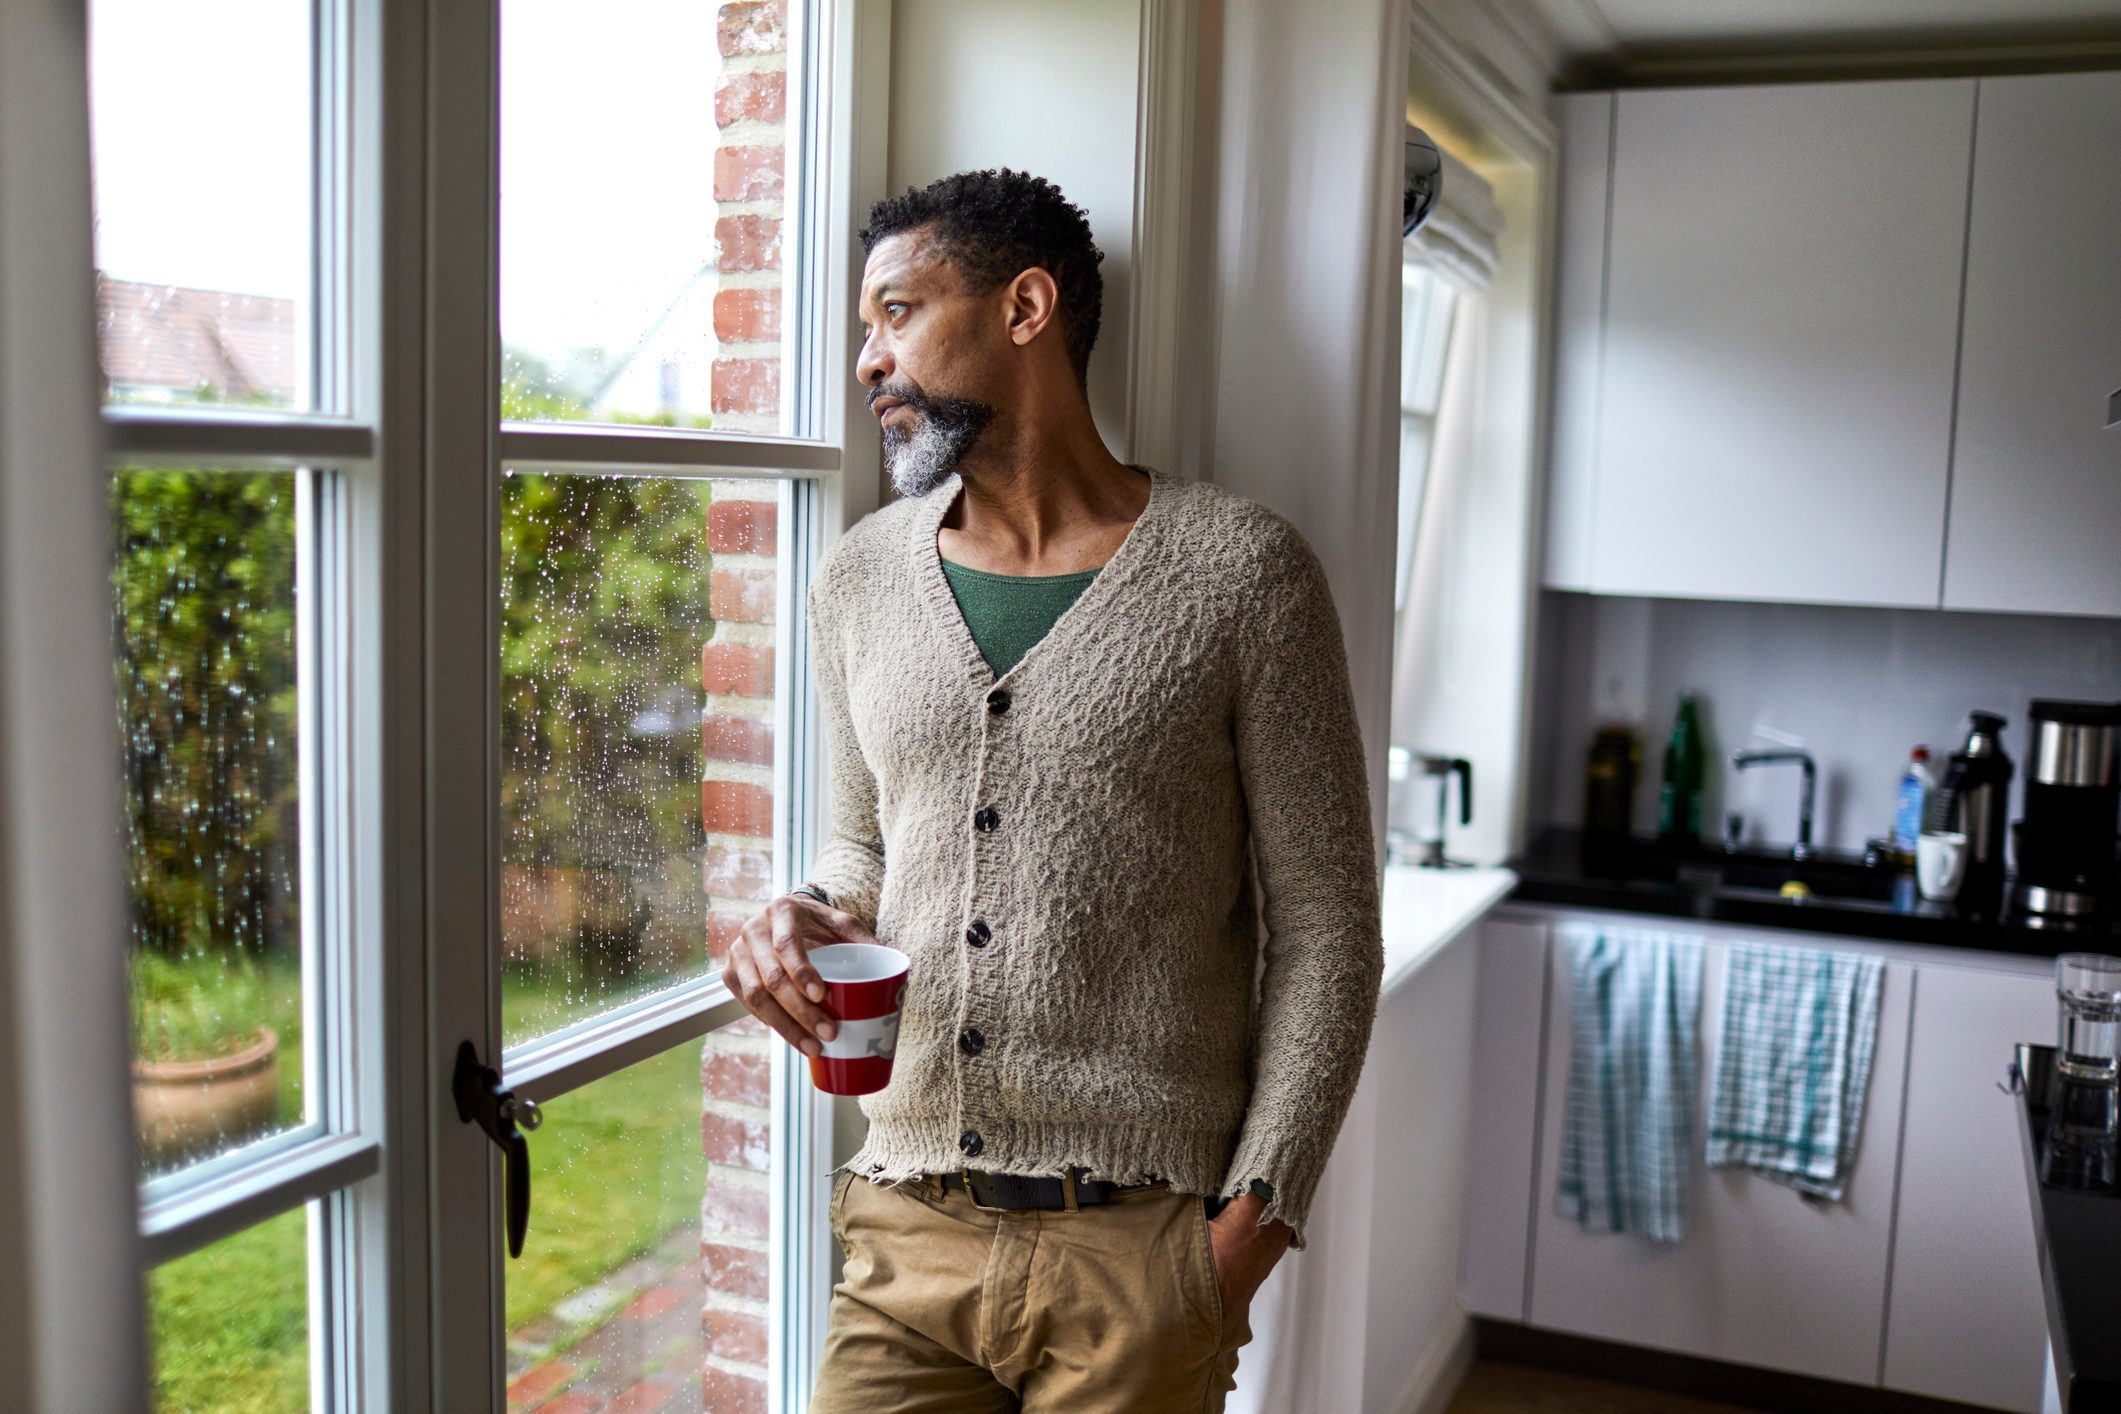 man looking pensively out window